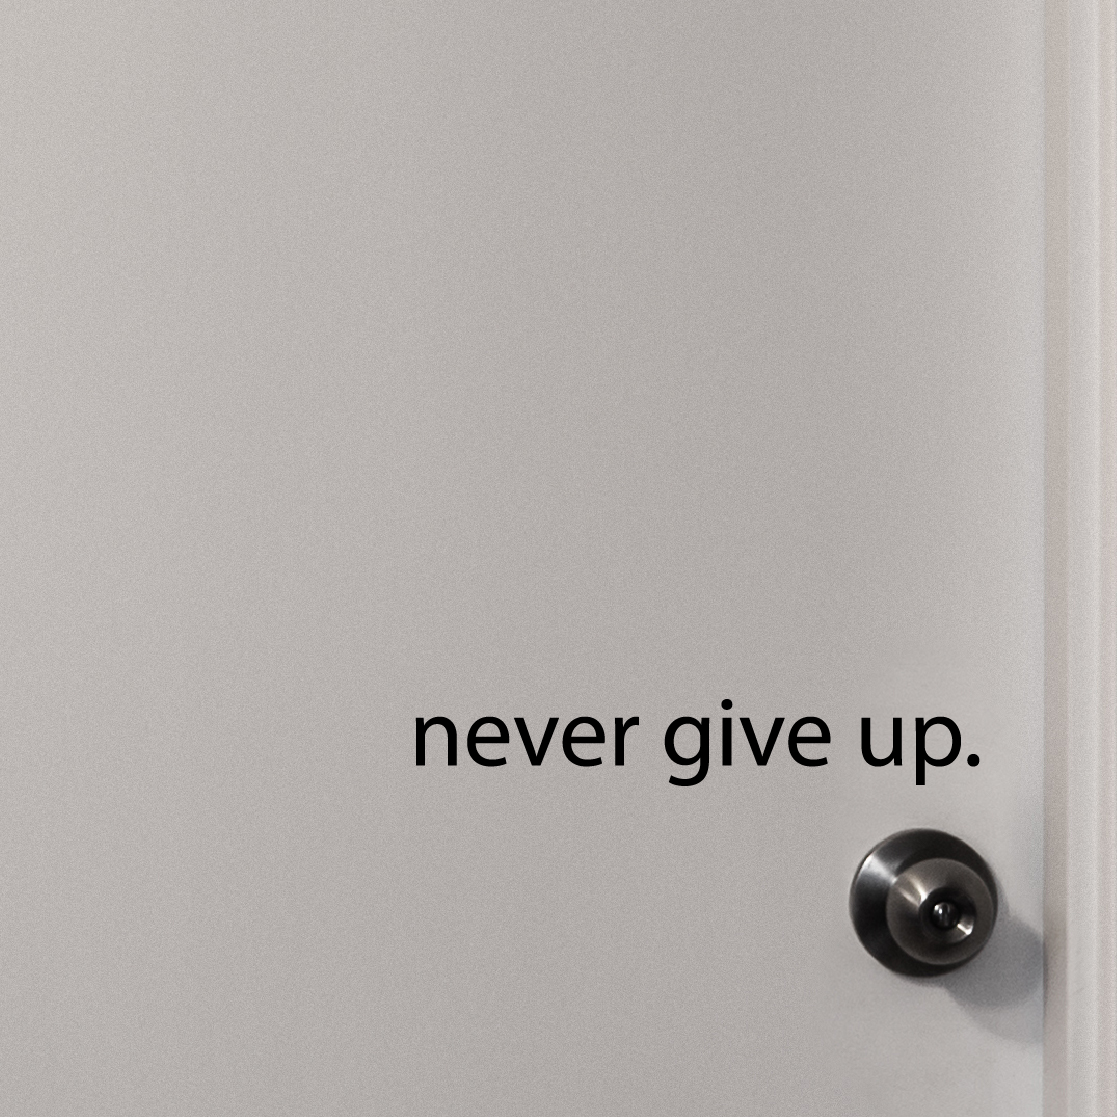 never-give-up-wall-decal-black.jpg